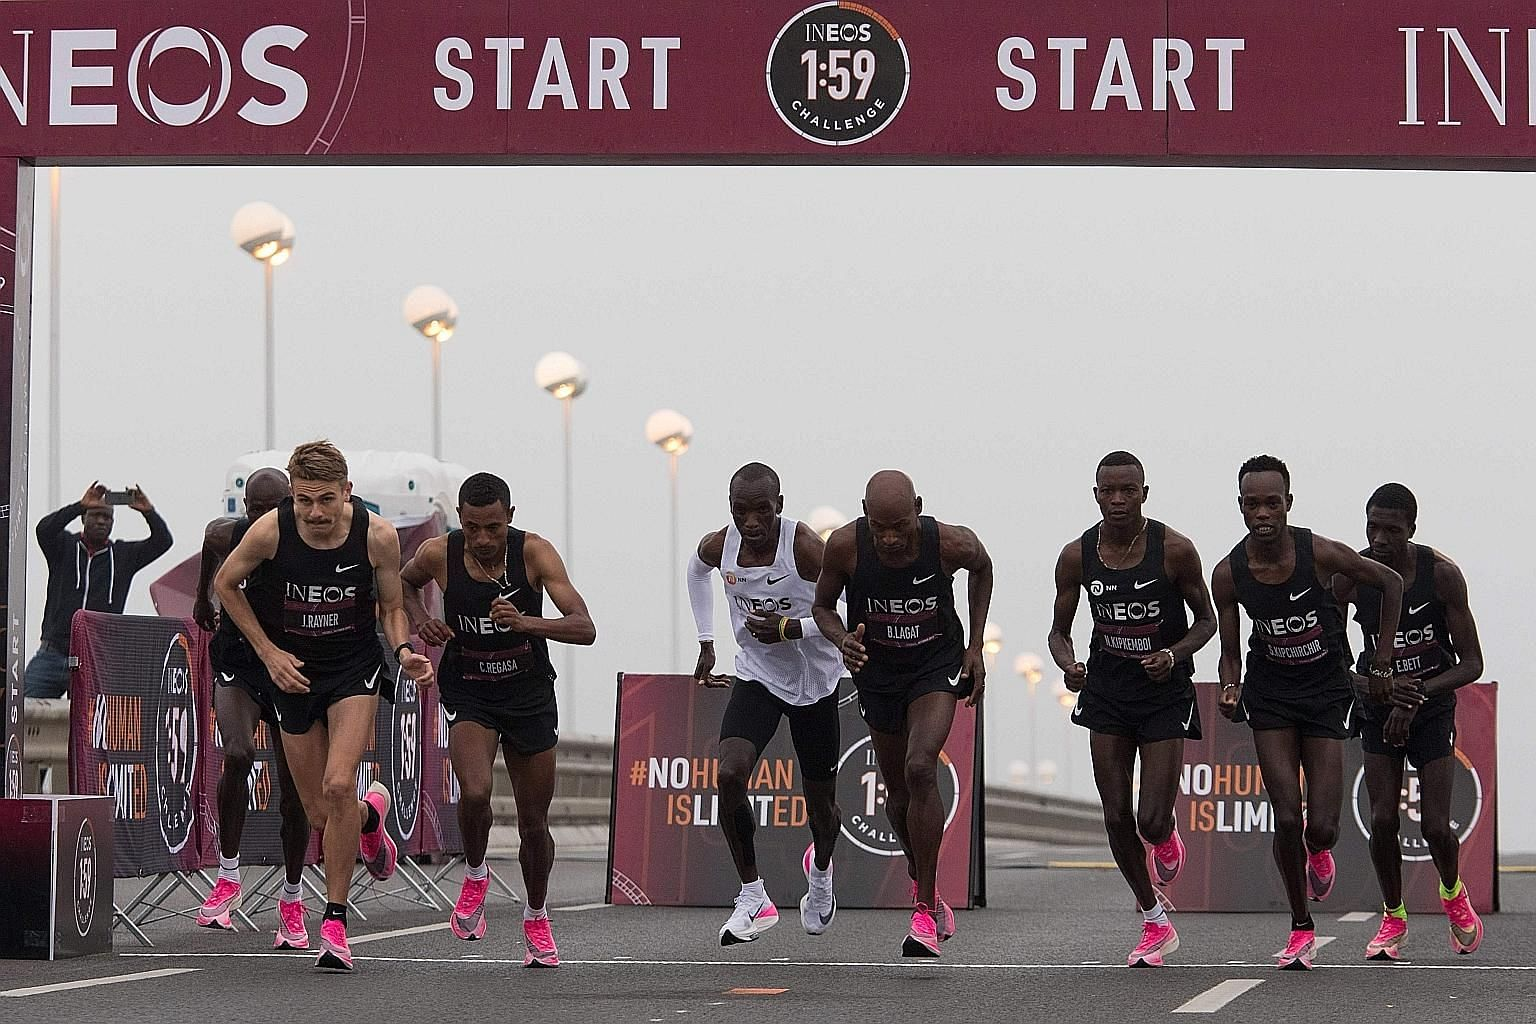 Kenyan marathoner Eliud Kipchoge in the unreleased version of the Nike ZoomX Vaporfly Next%, with his pacers in the pink Next%, starting the marathon that busted the two-hour barrier in Vienna on Oct 12. PHOTO: AGENCE FRANCE-PRESSE